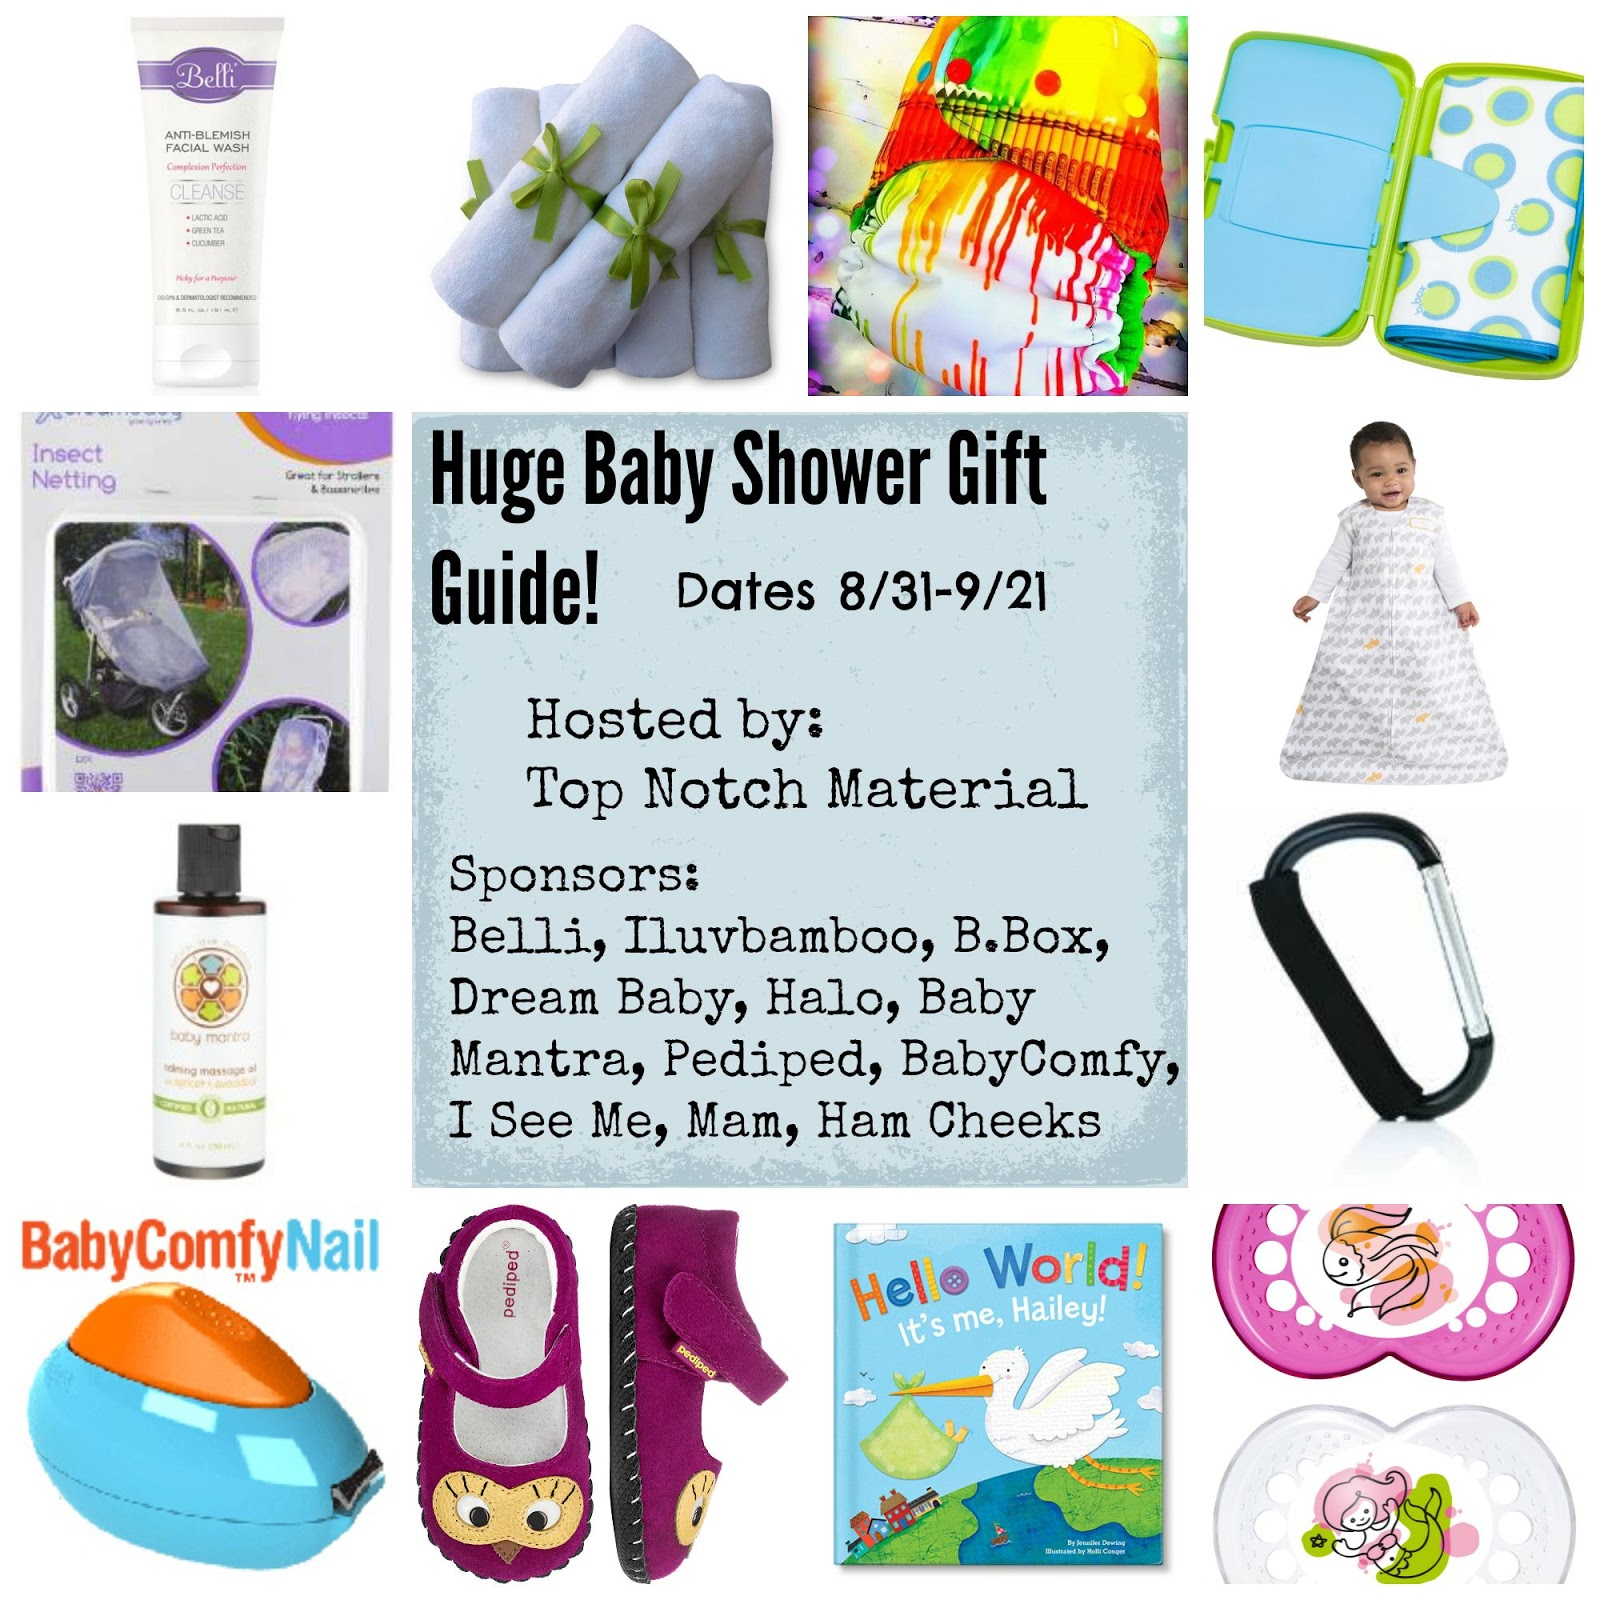 Top Notch Material: Baby Shower Gift Guide HUGE Prize Pack ...